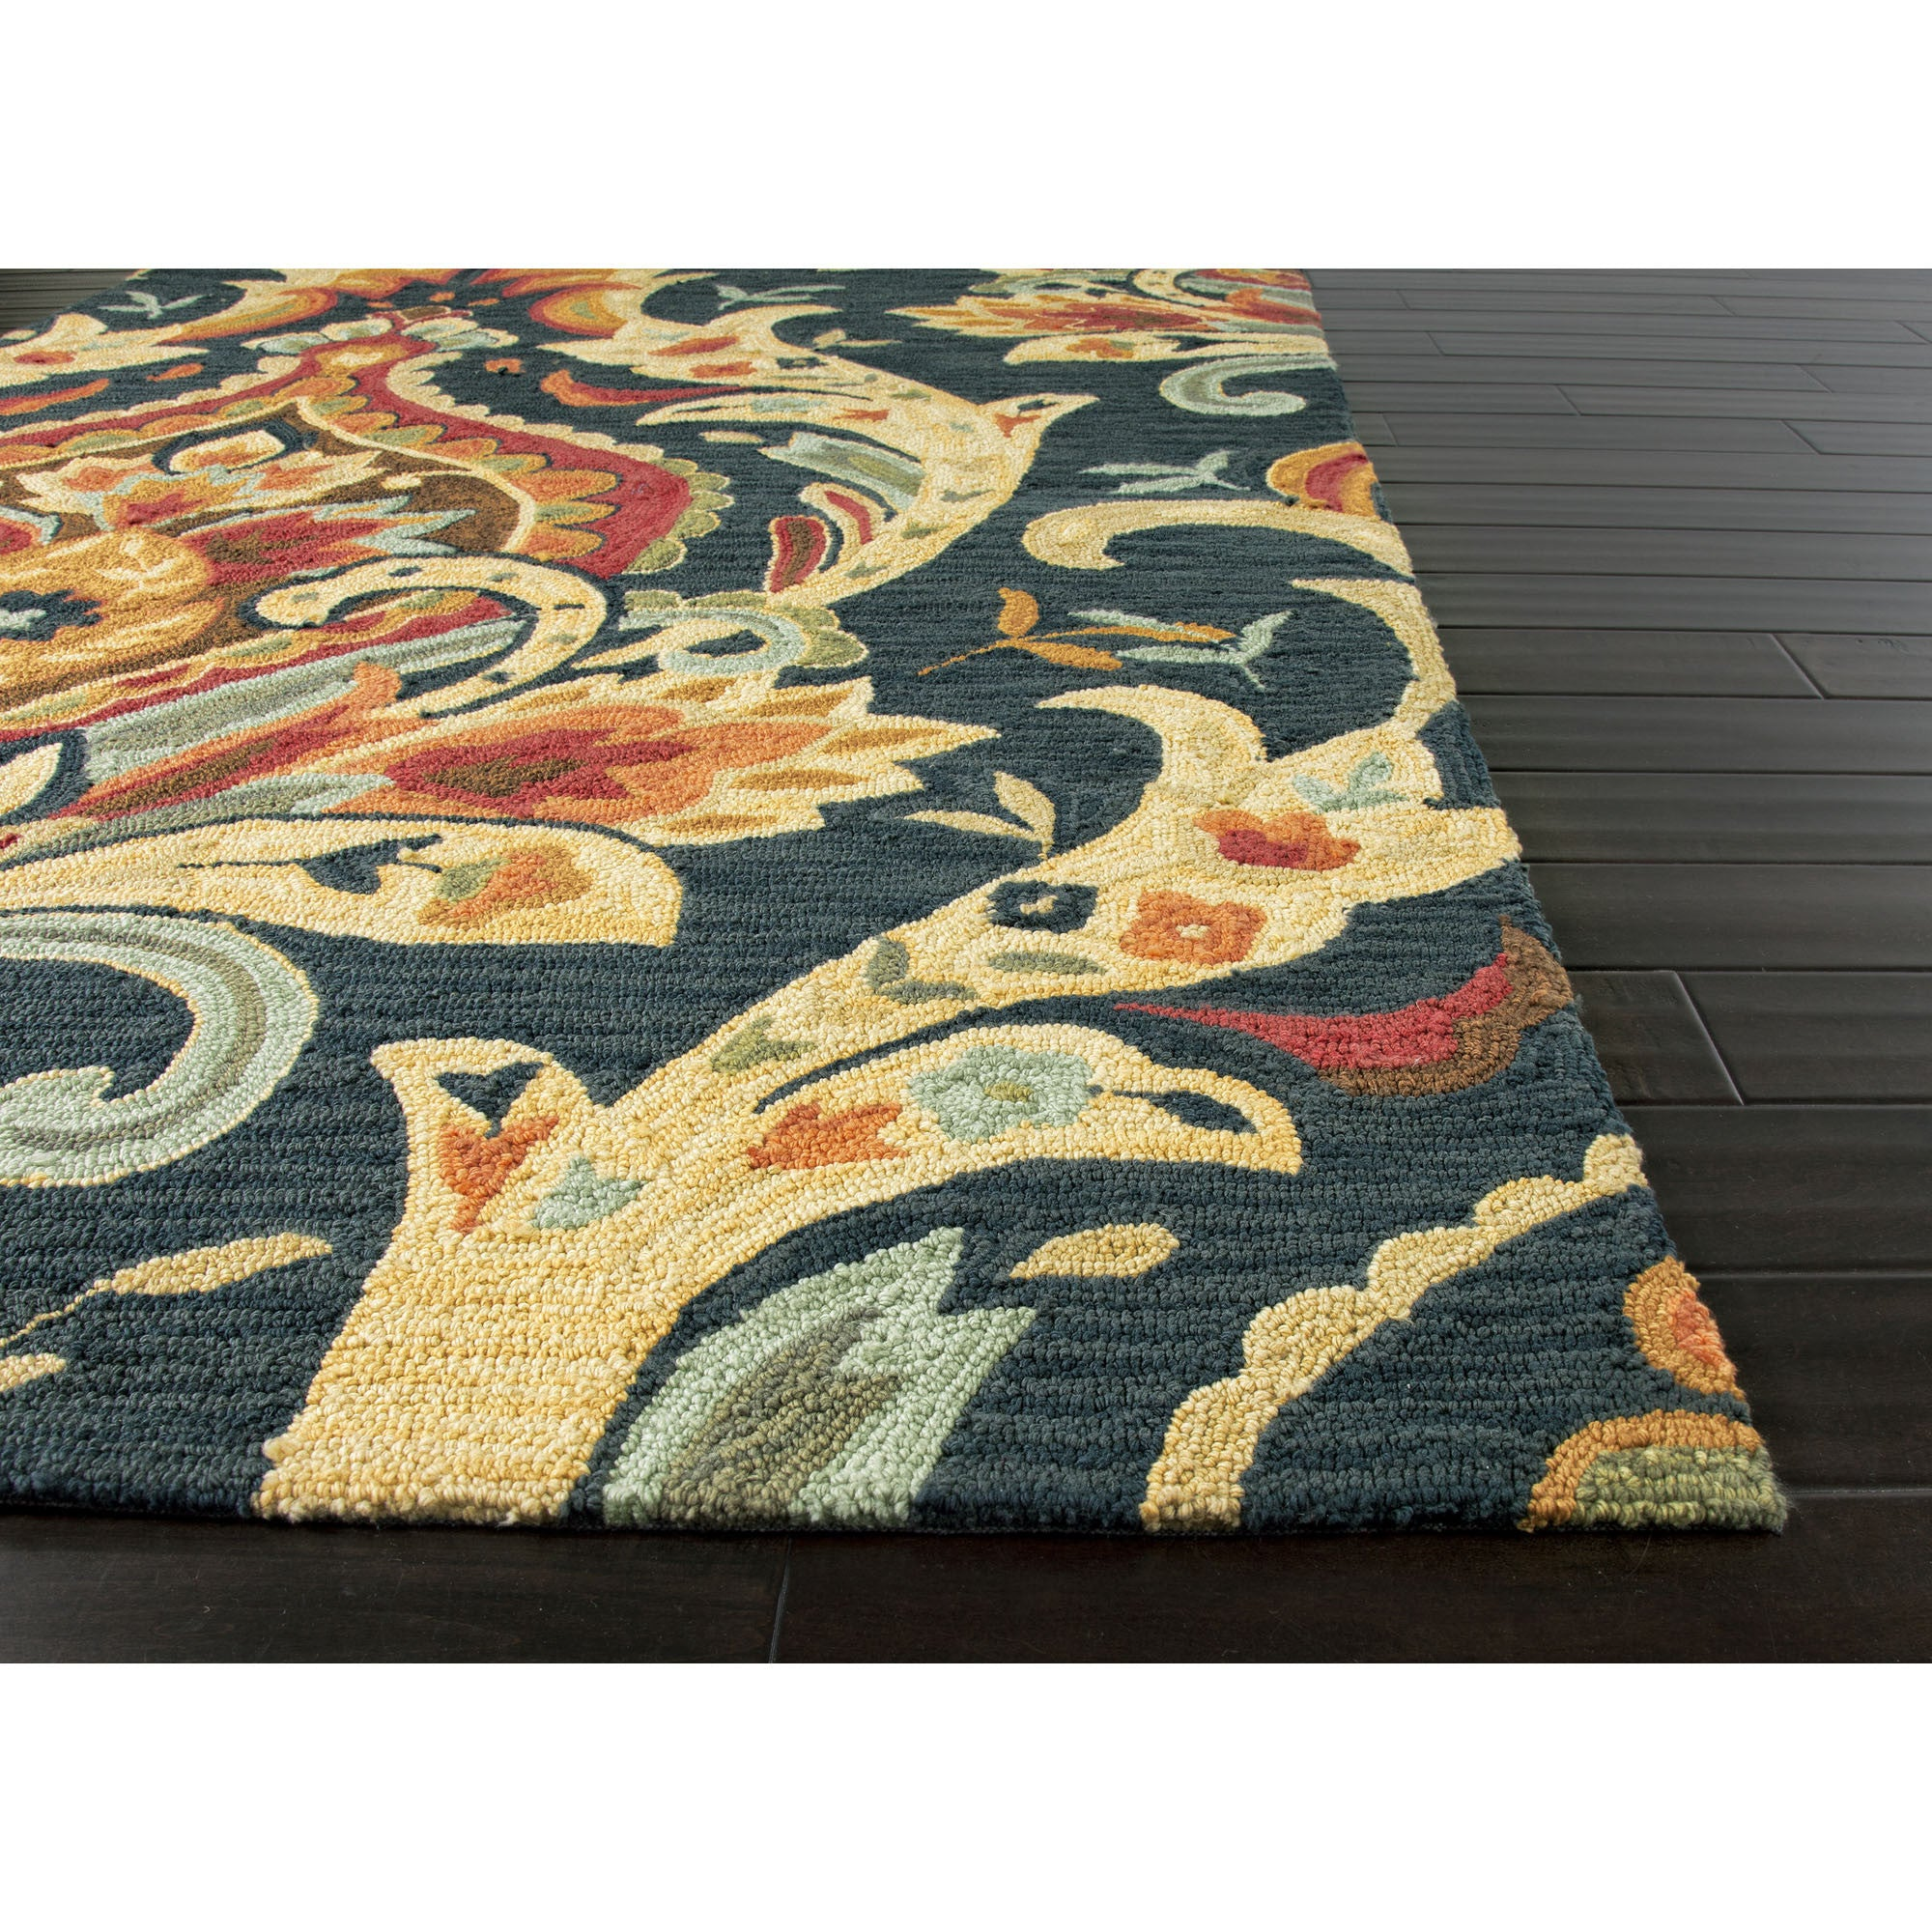 Jaipur rugs modern floral pattern blue red polyester area for Red and blue area rug